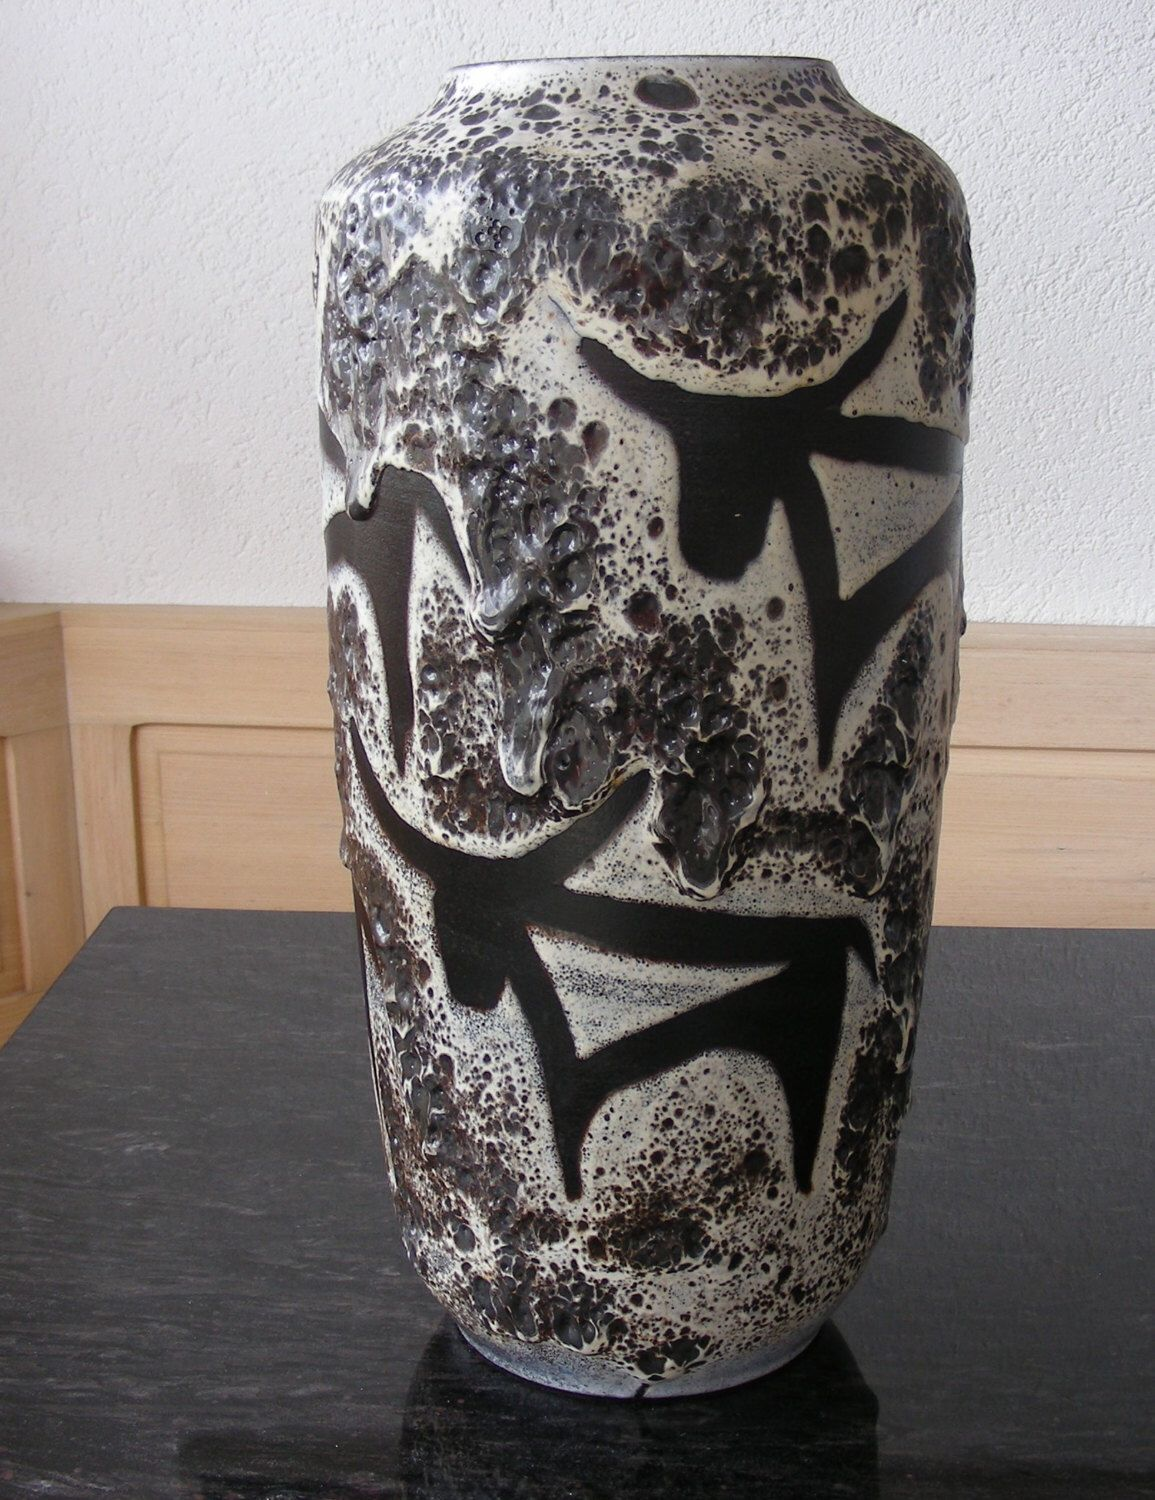 West german pottery floor vase with bulls scheurich 517 45 by west german pottery floor vase with bulls scheurich 517 45 by brockistop on etsy reviewsmspy